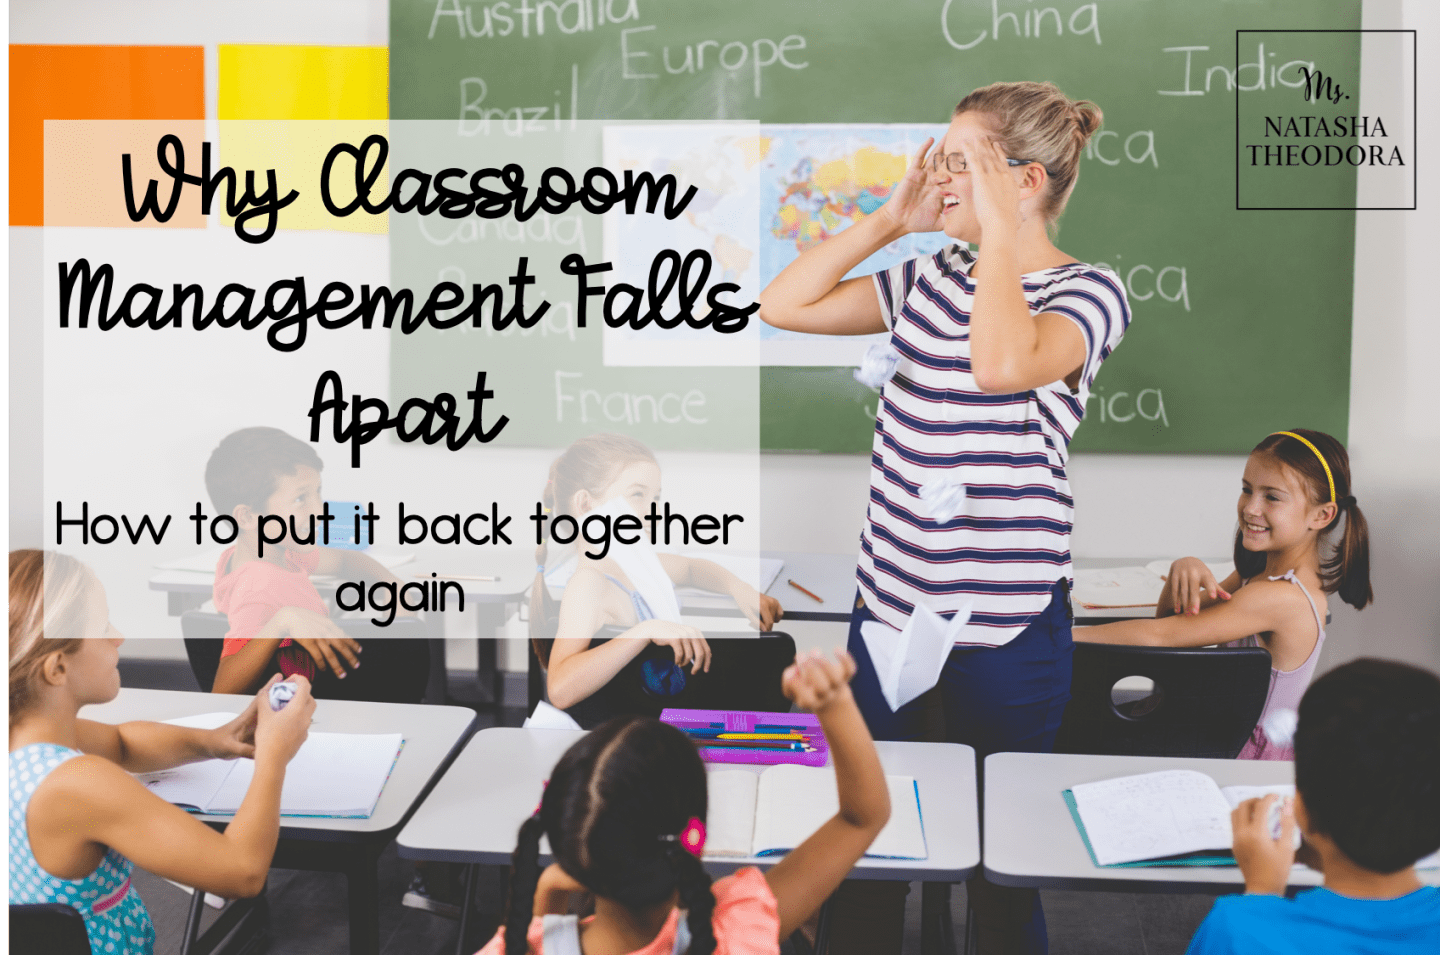 Why Classroom Management Falls Apart